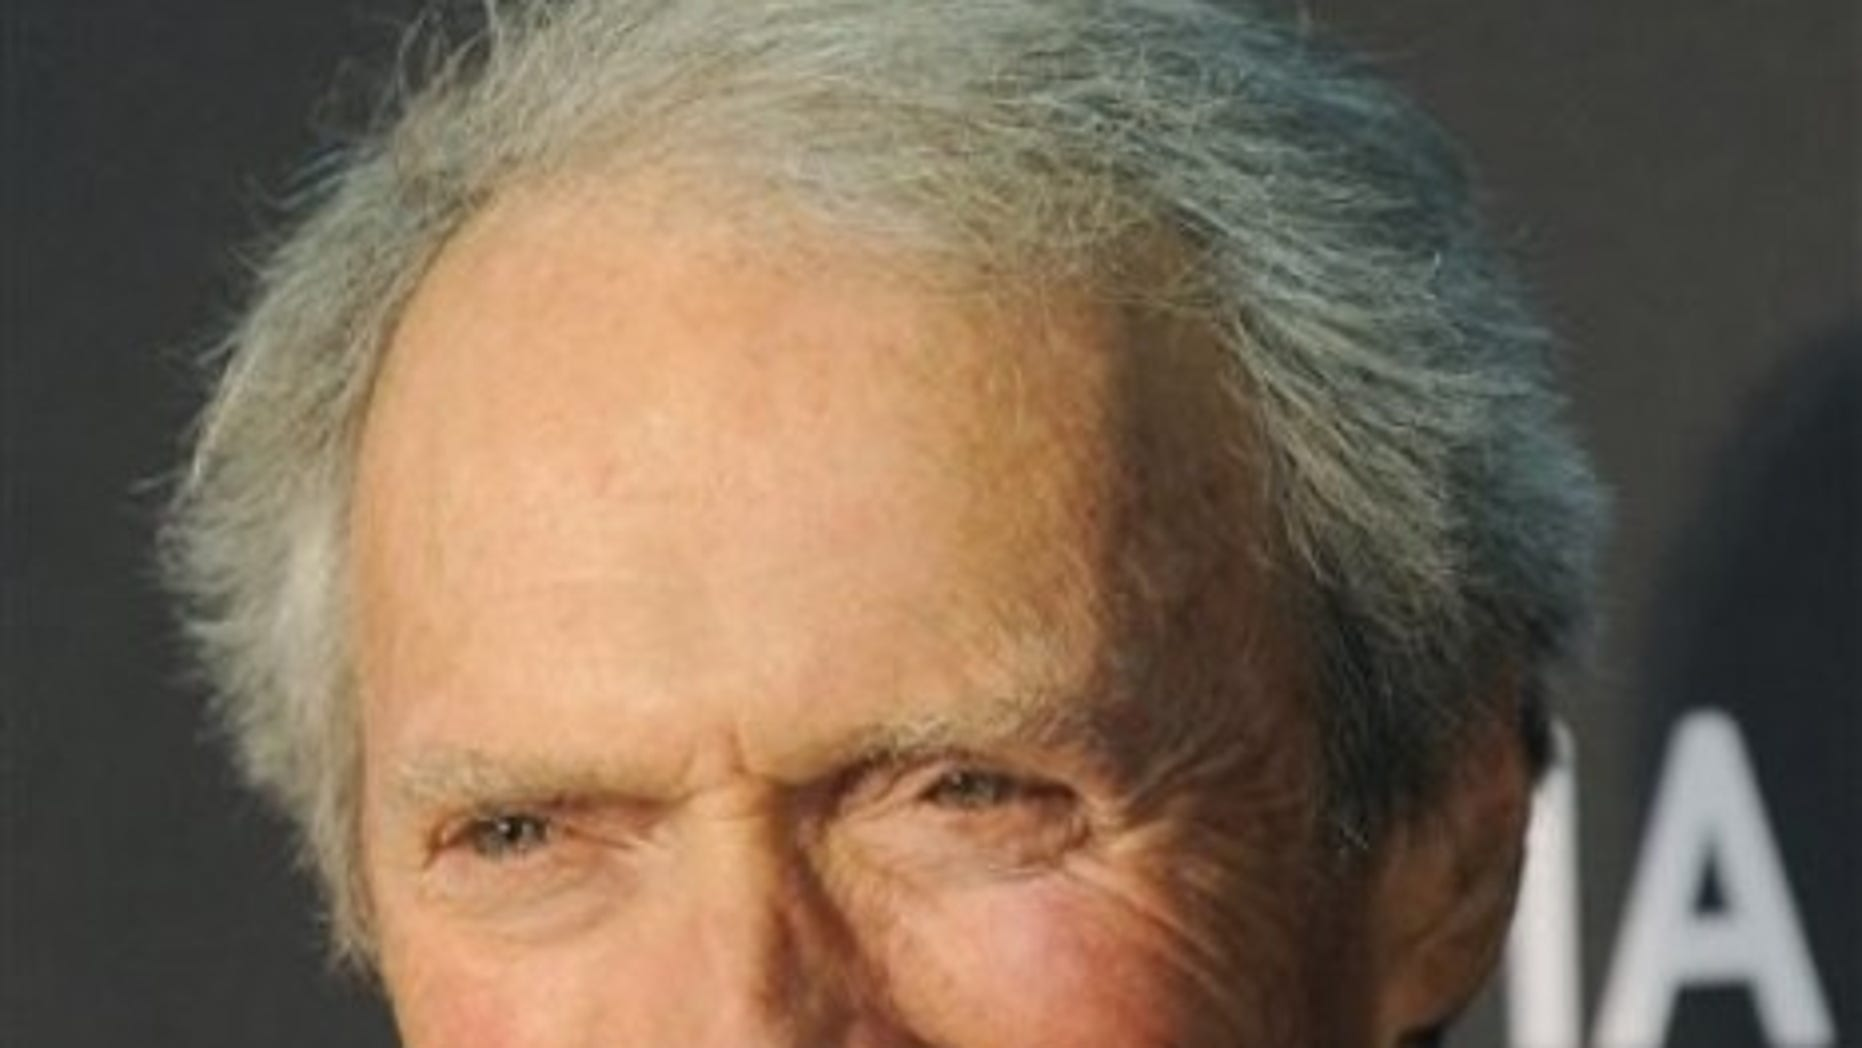 Feb. 17, 20110: Actor and director Clint Eastwood poses at An Evening with Clint Eastwood, presented by Warner Bros. and the Los Angeles County Museum of Art in Los Angeles.